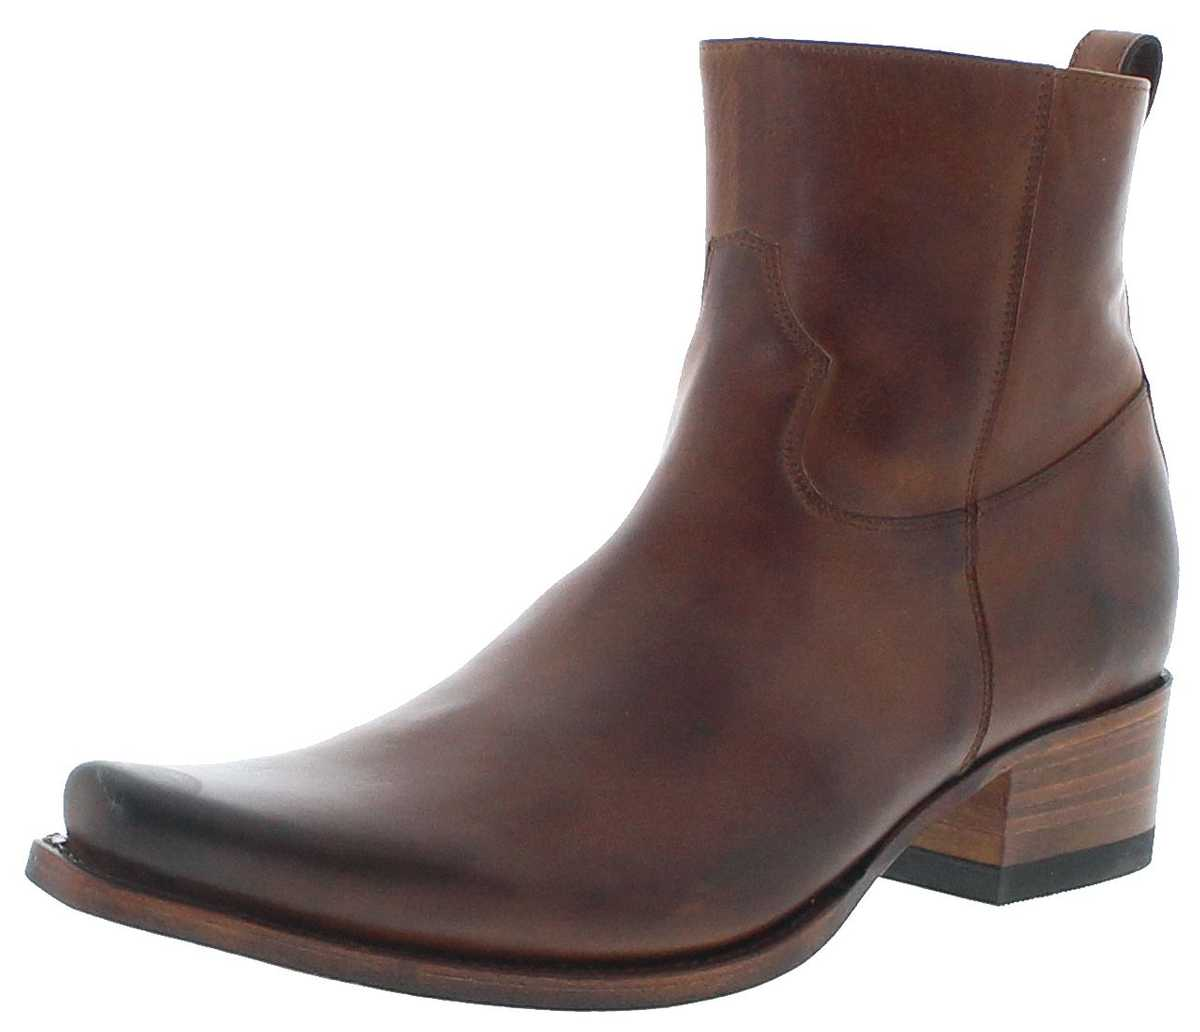 Sendra Boots 12322 Tang Men's Leather Bootee - brown